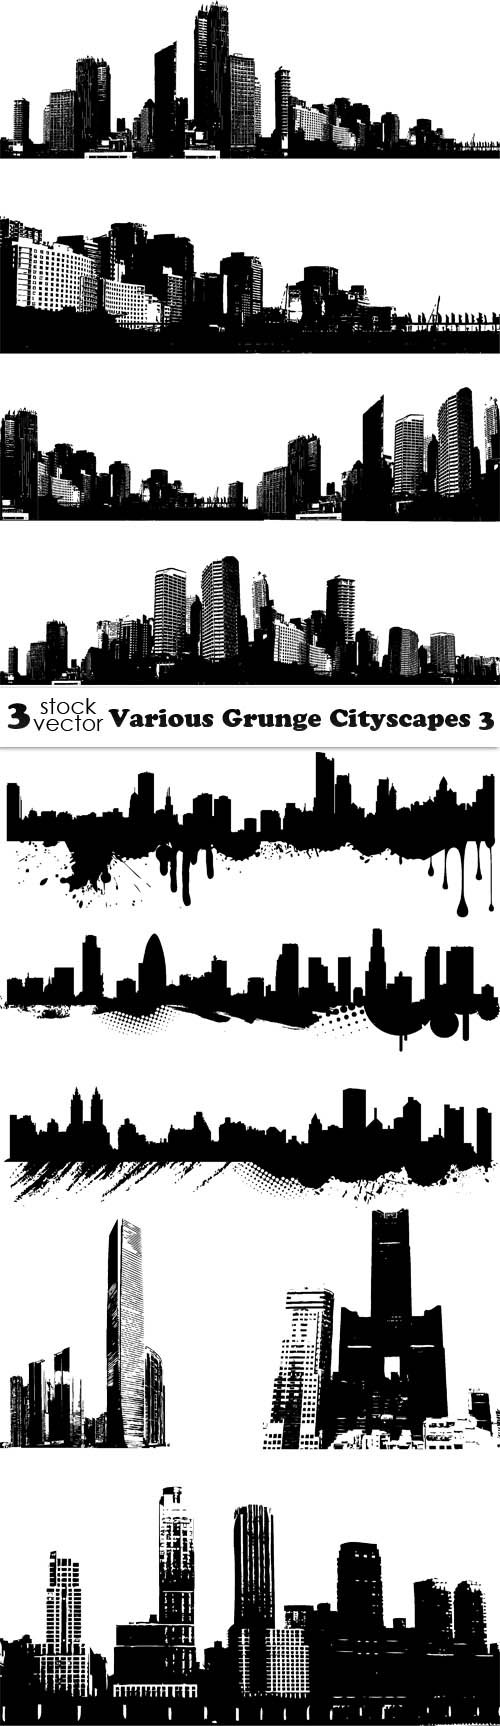 Vectors - Various Grunge Cityscapes 3